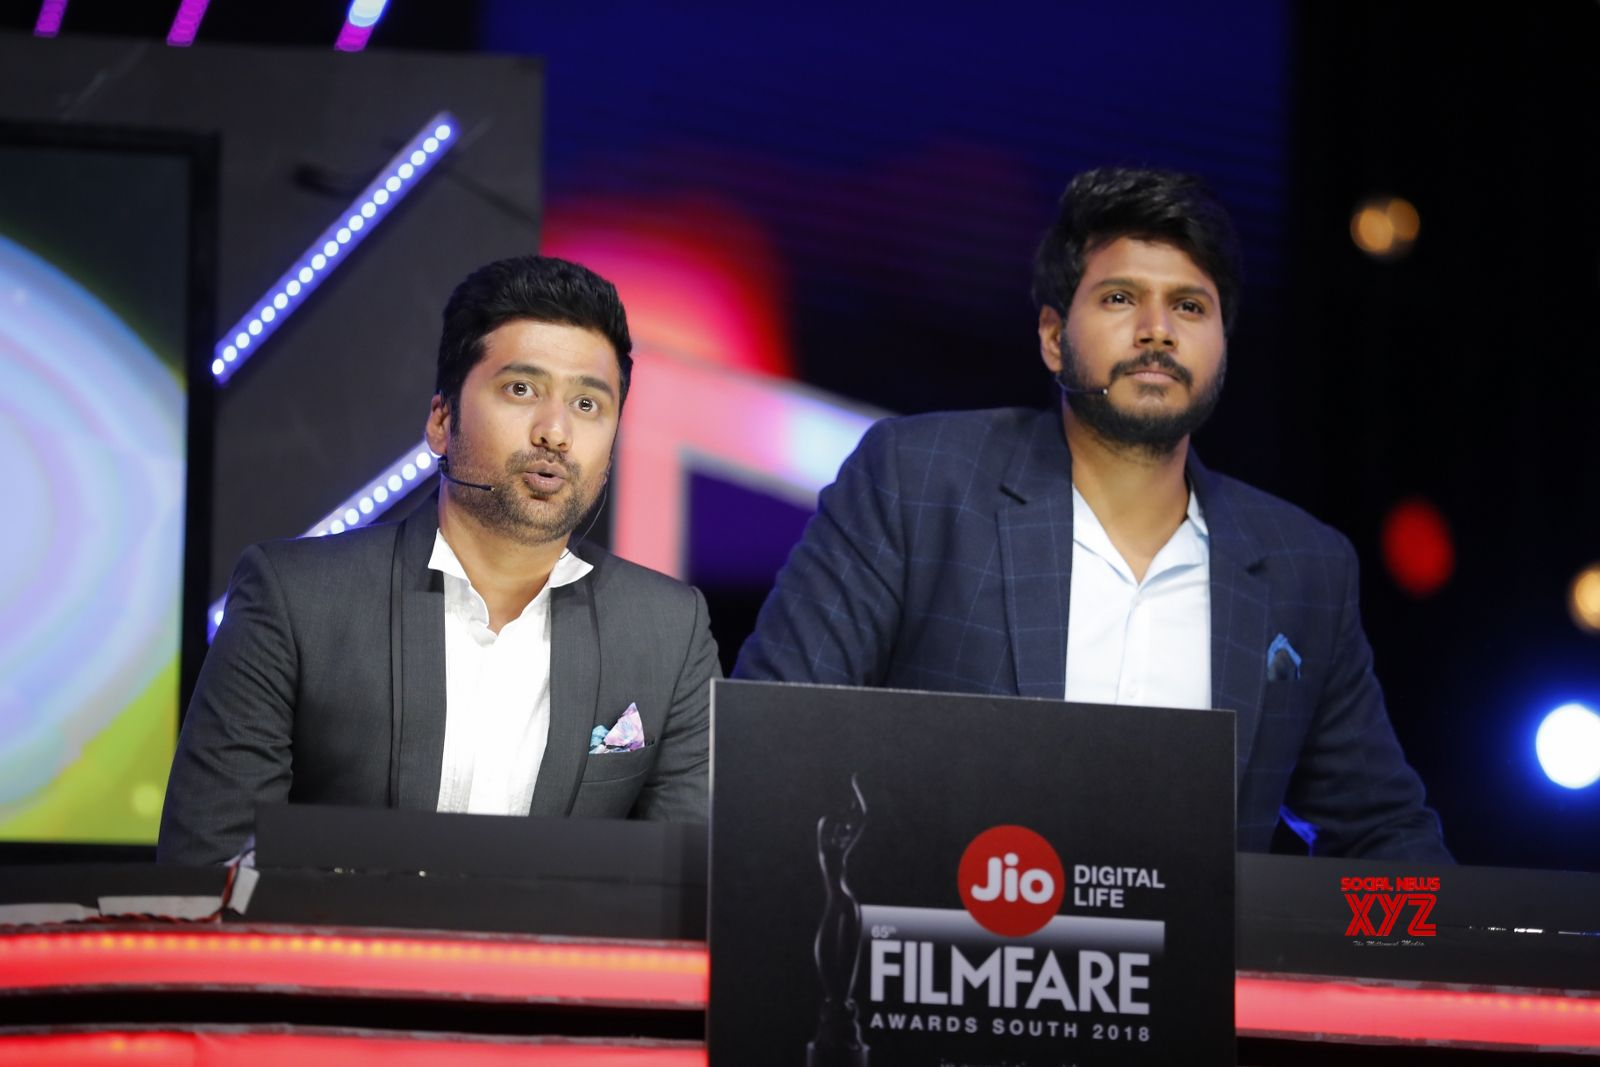 Cinematic Excellence reigned supreme at the 65th Jio